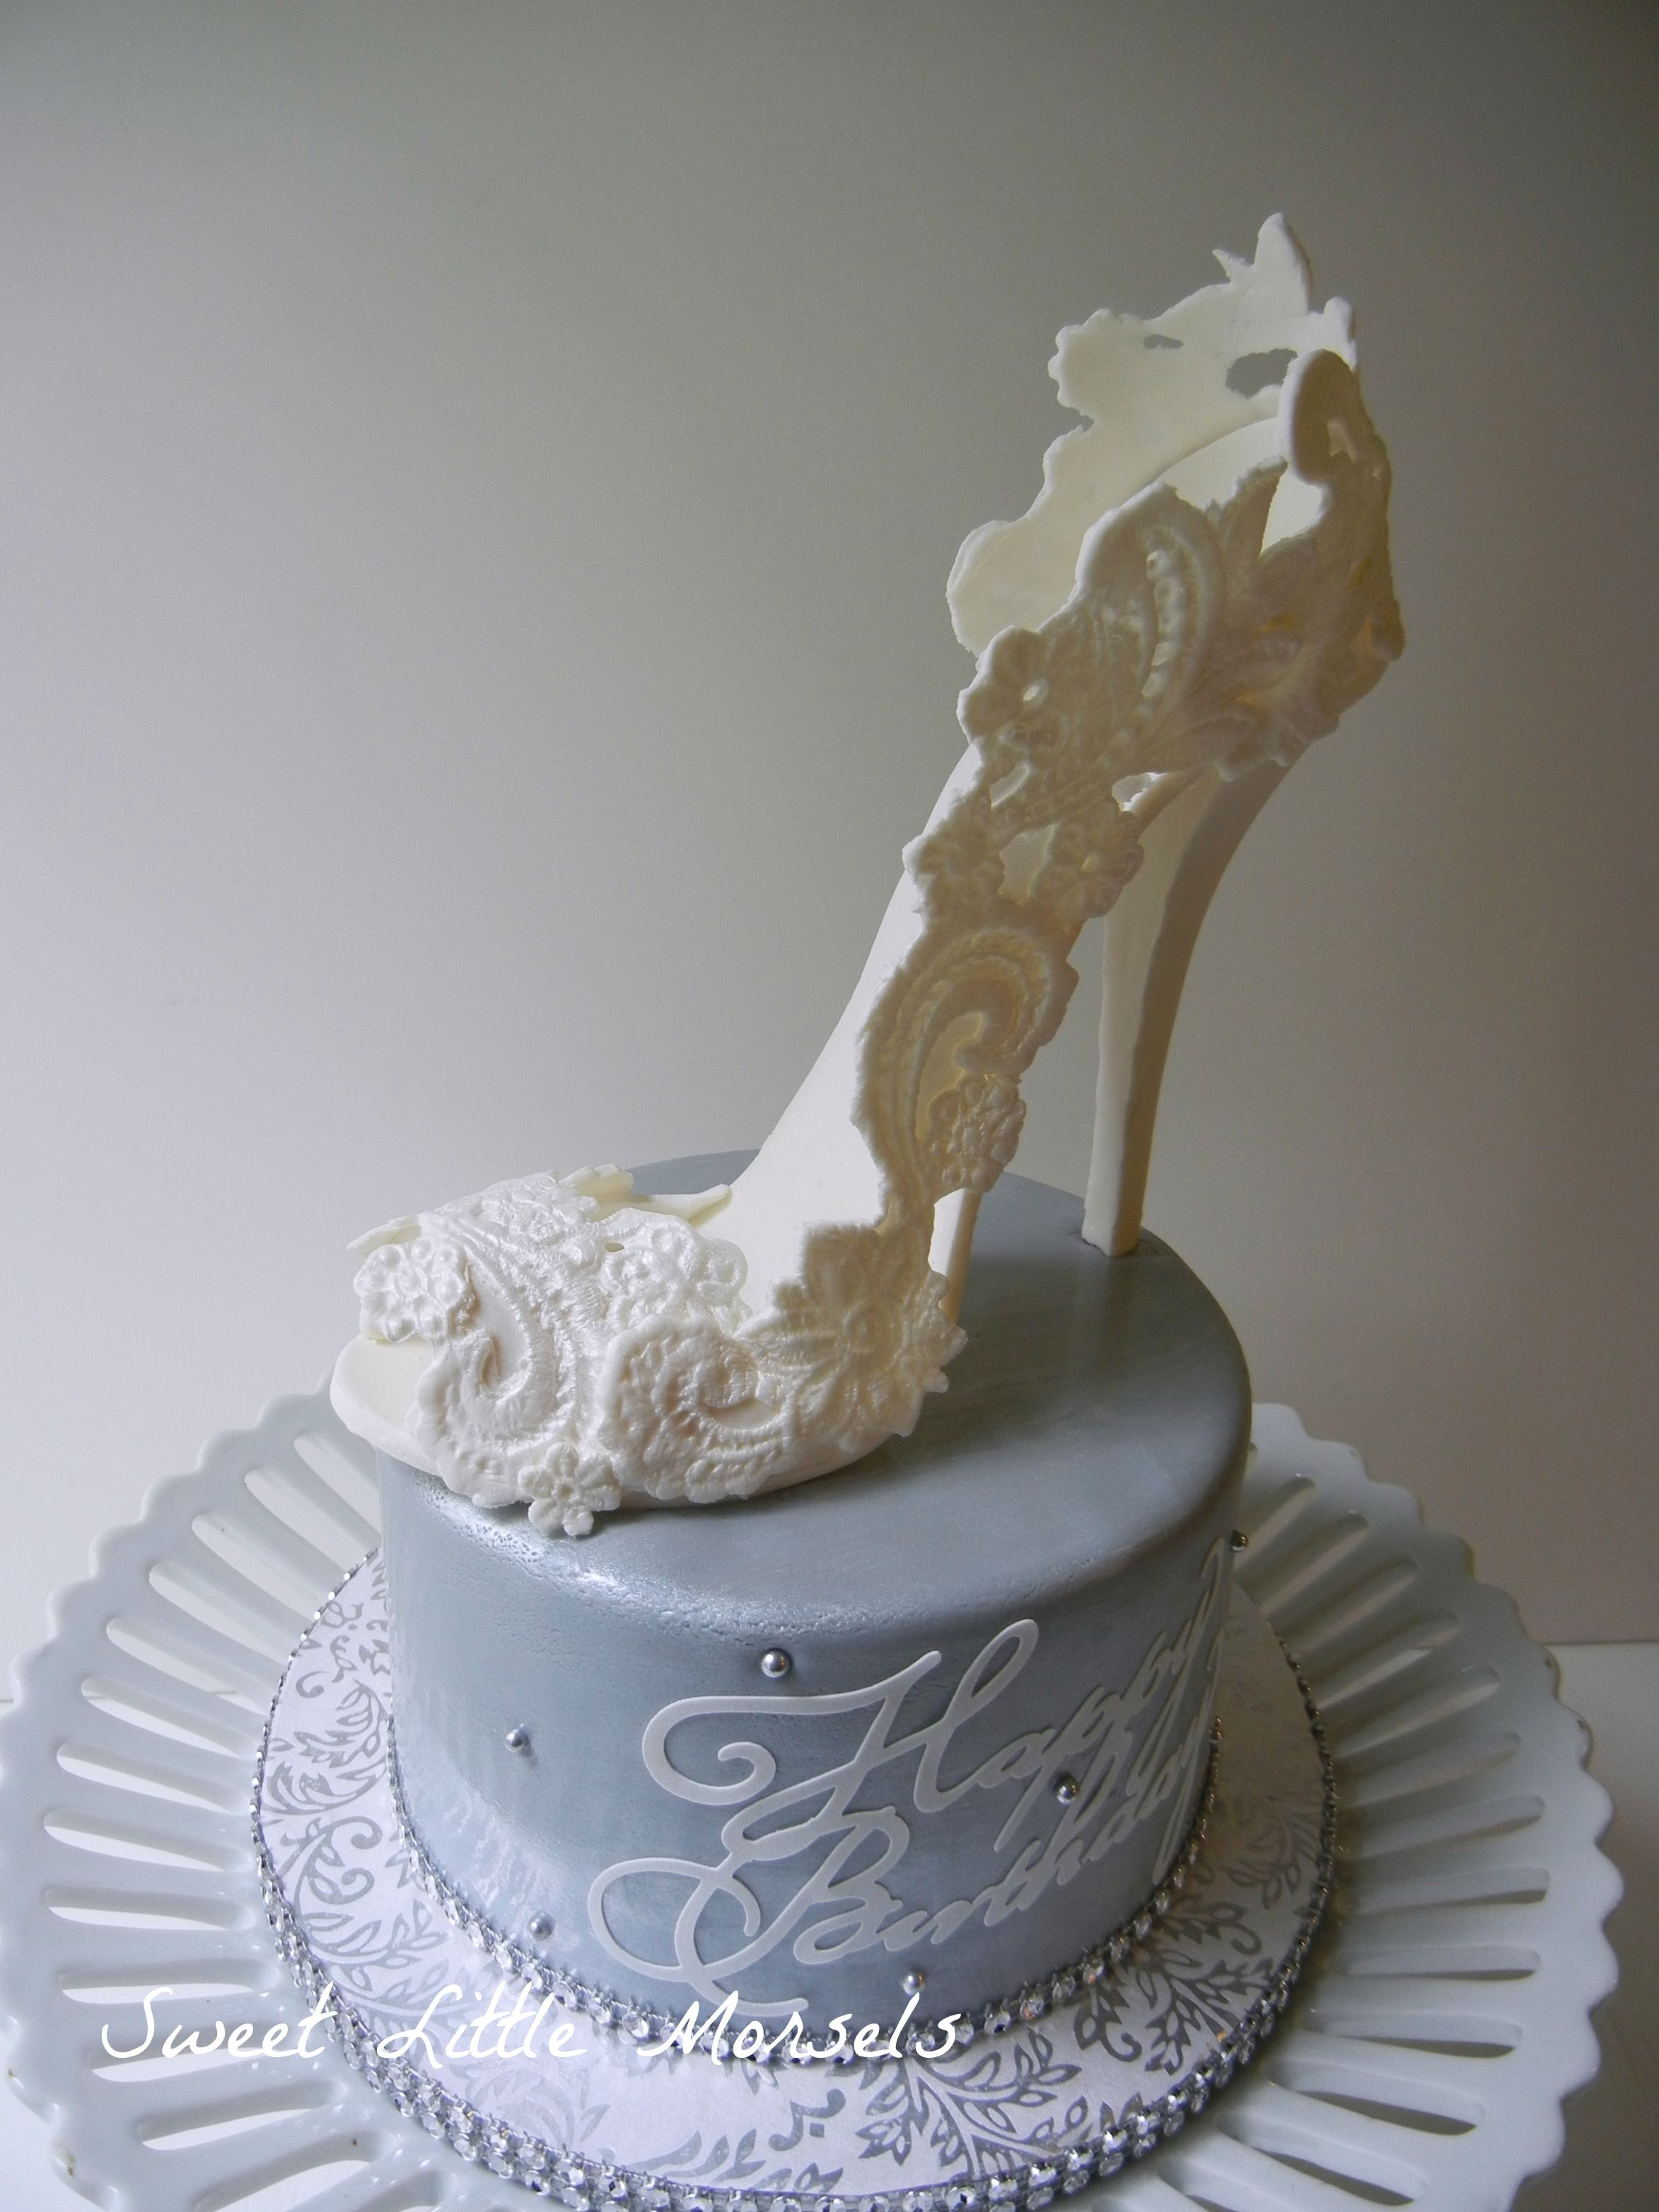 Birthday Cake Designs Shoes : - Birthday cake I did for a friend, who LOVES shoes. I ...